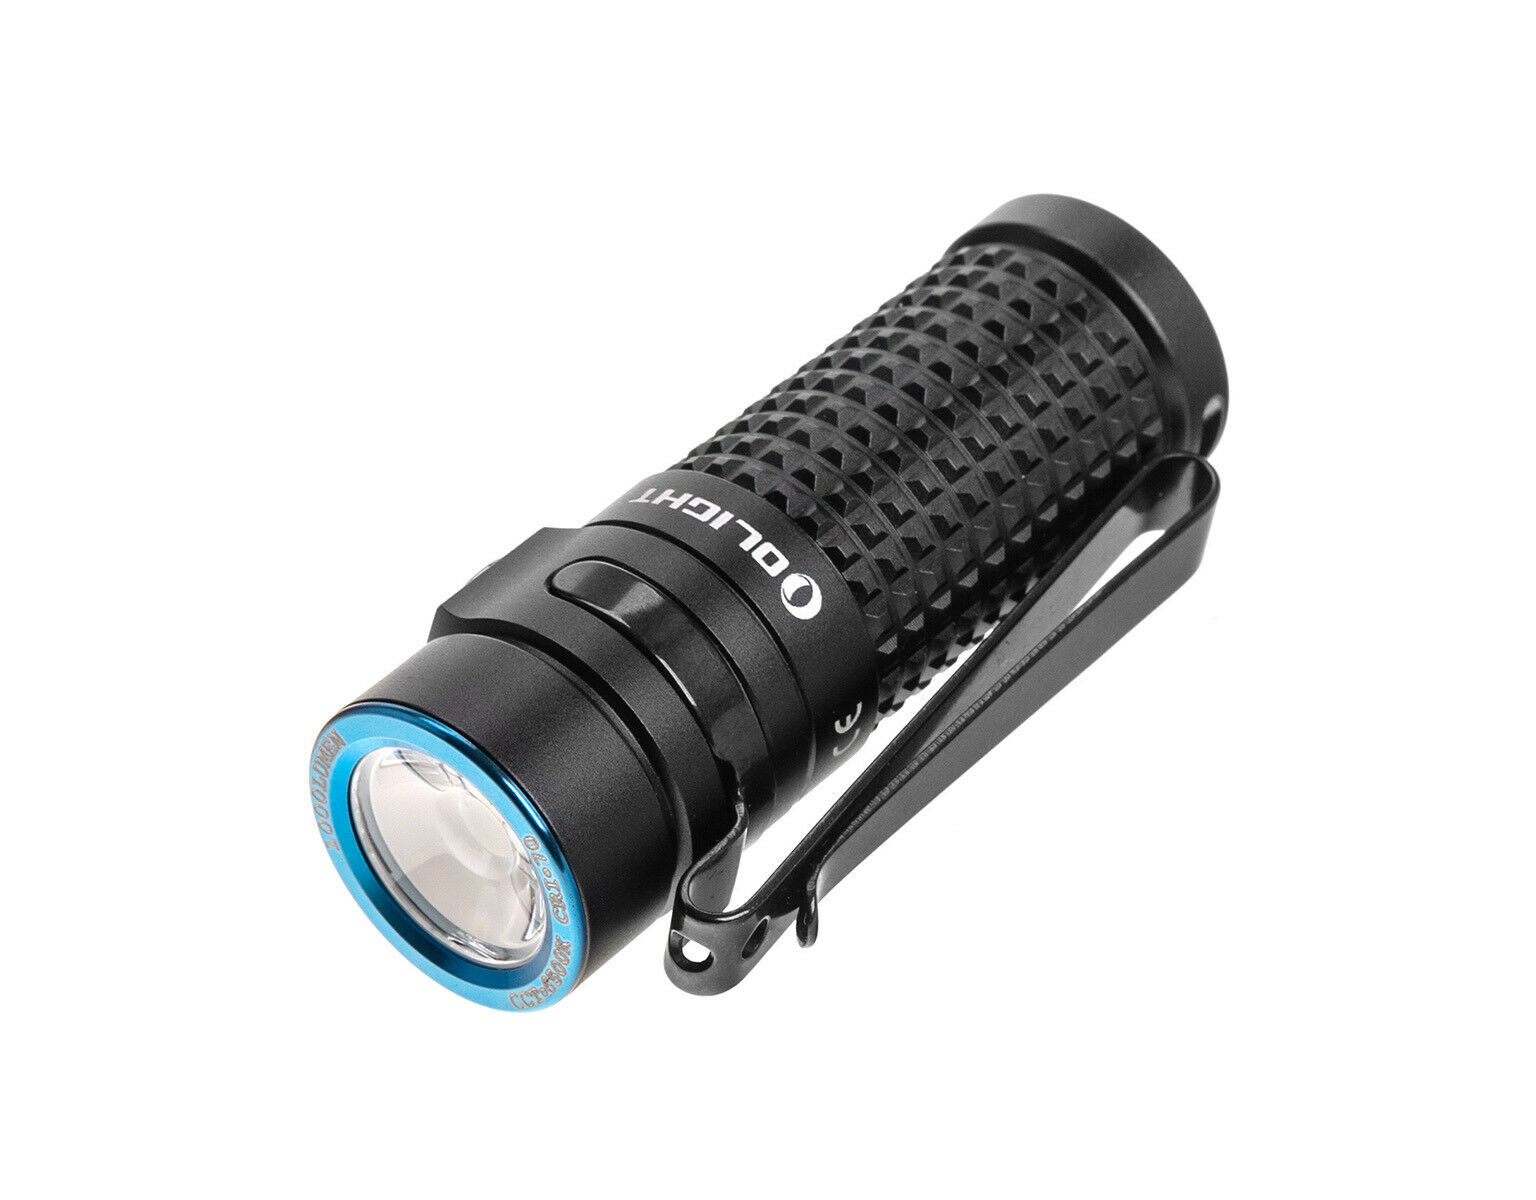 Olight S1R II Baton Taschenlampe Flashlight 1000 lm Akku  Licht Cree XM-L2 LED  for sale online